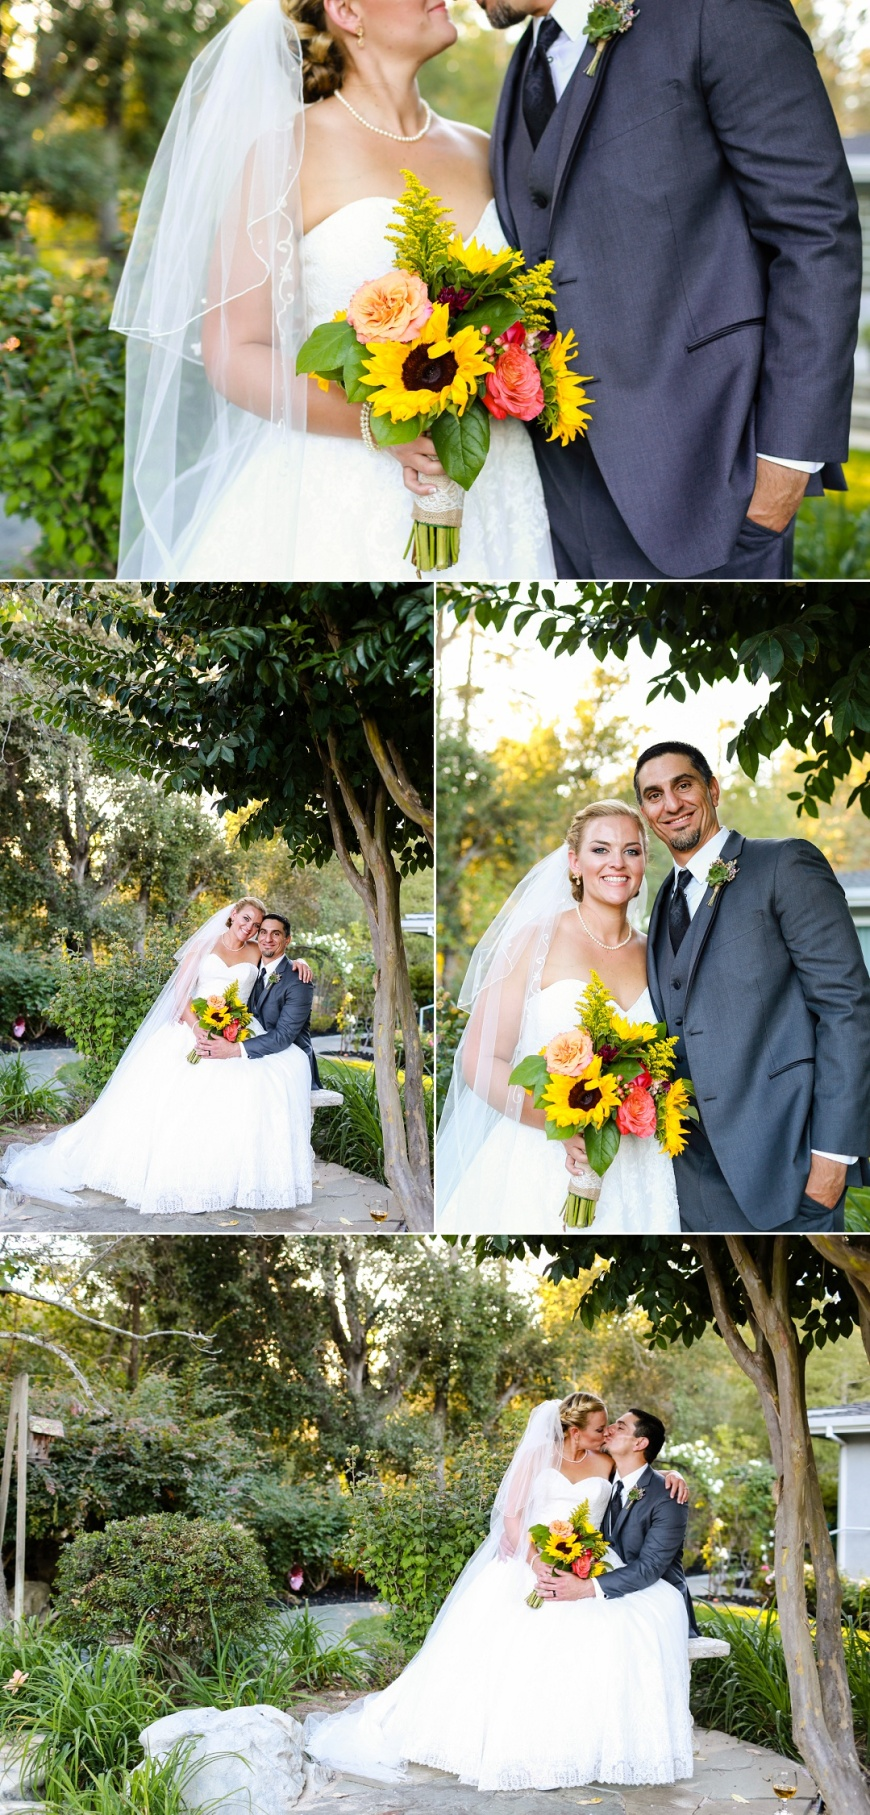 Monte-Sereno-Wedding-Photographer_1075.jpg